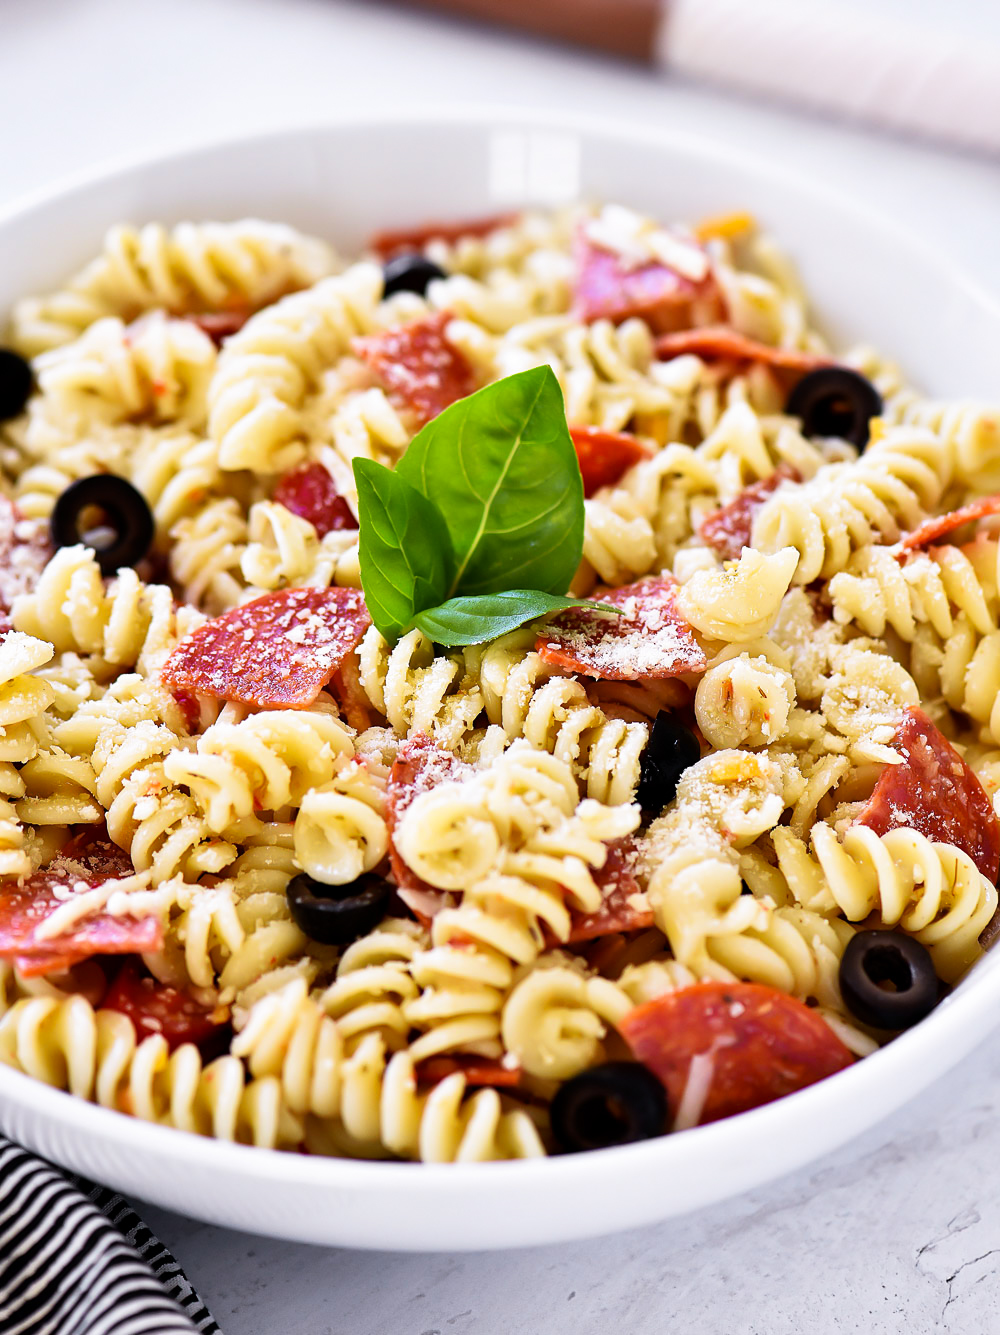 Pepperoni Pizza Pasta Salad is filled with noodles, pepperoni, cheese, Italian dressing and black olives. Life-in-the-Lofthouse.com